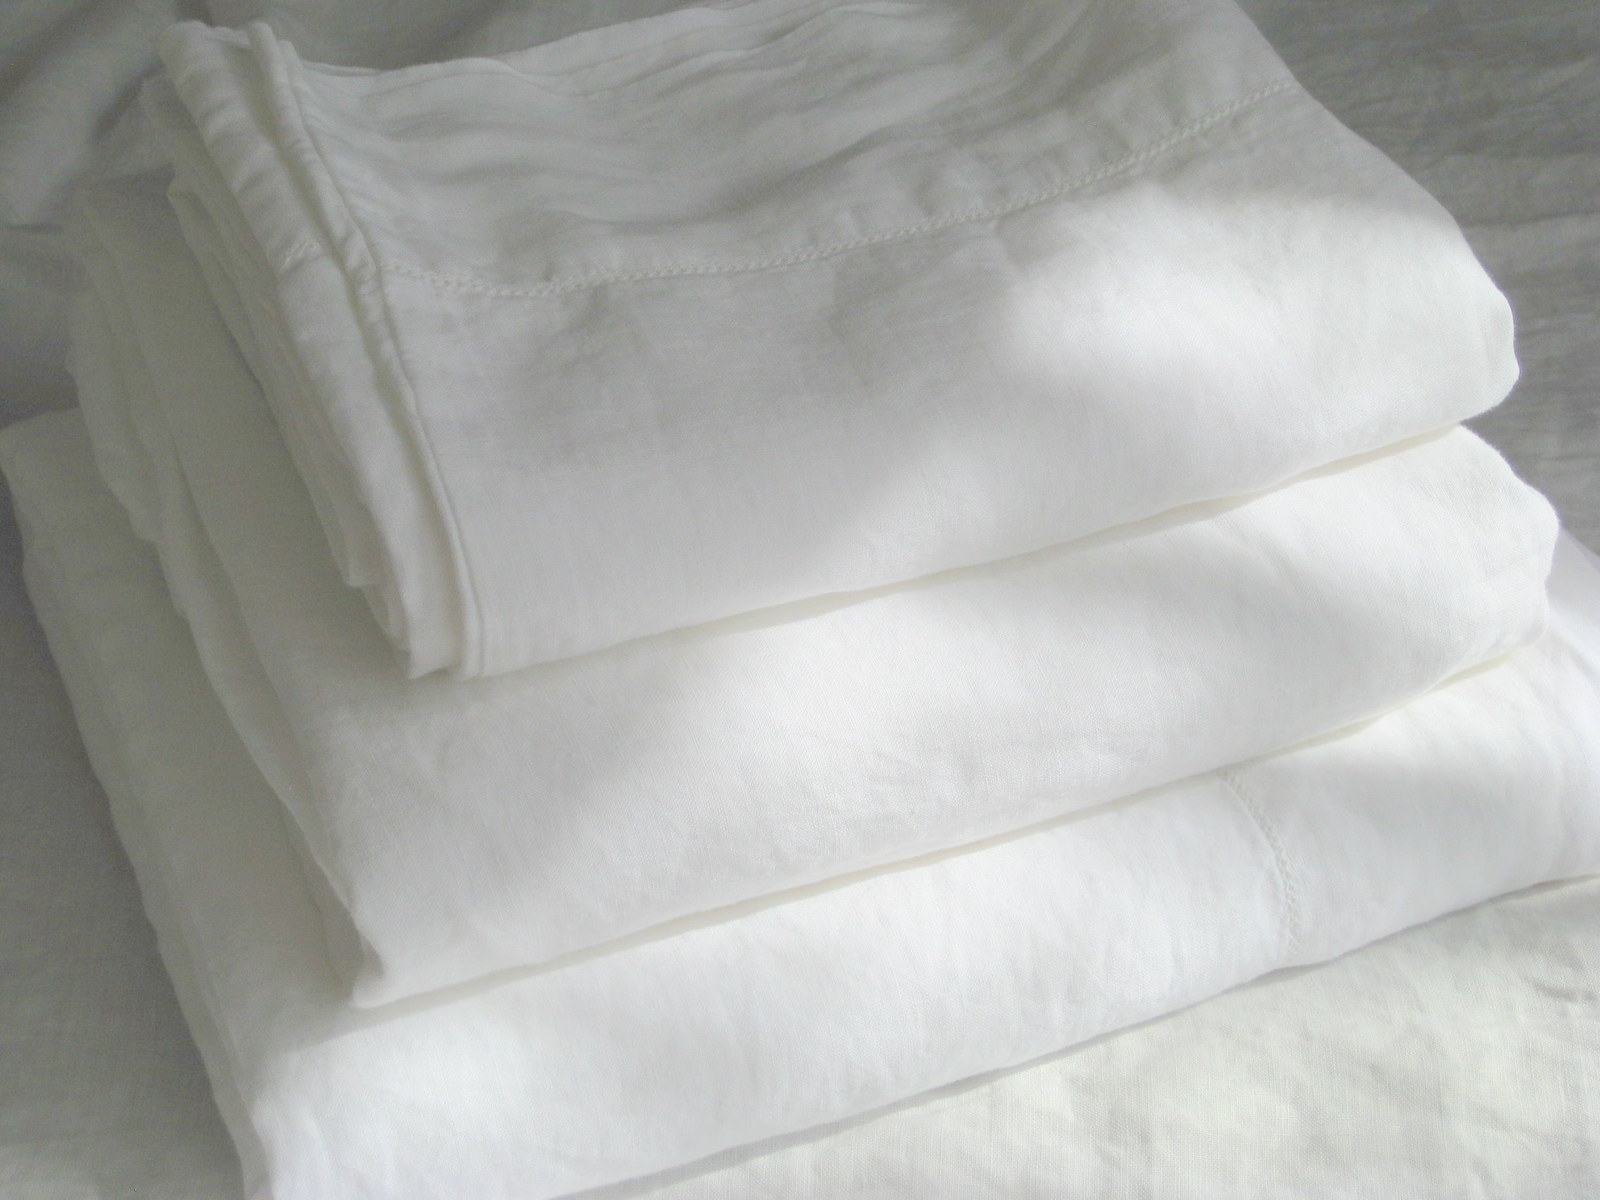 Pure Flax Linen 4 PC Bedding Set, Full Size, White Color with Hemstitch Details - $168.00